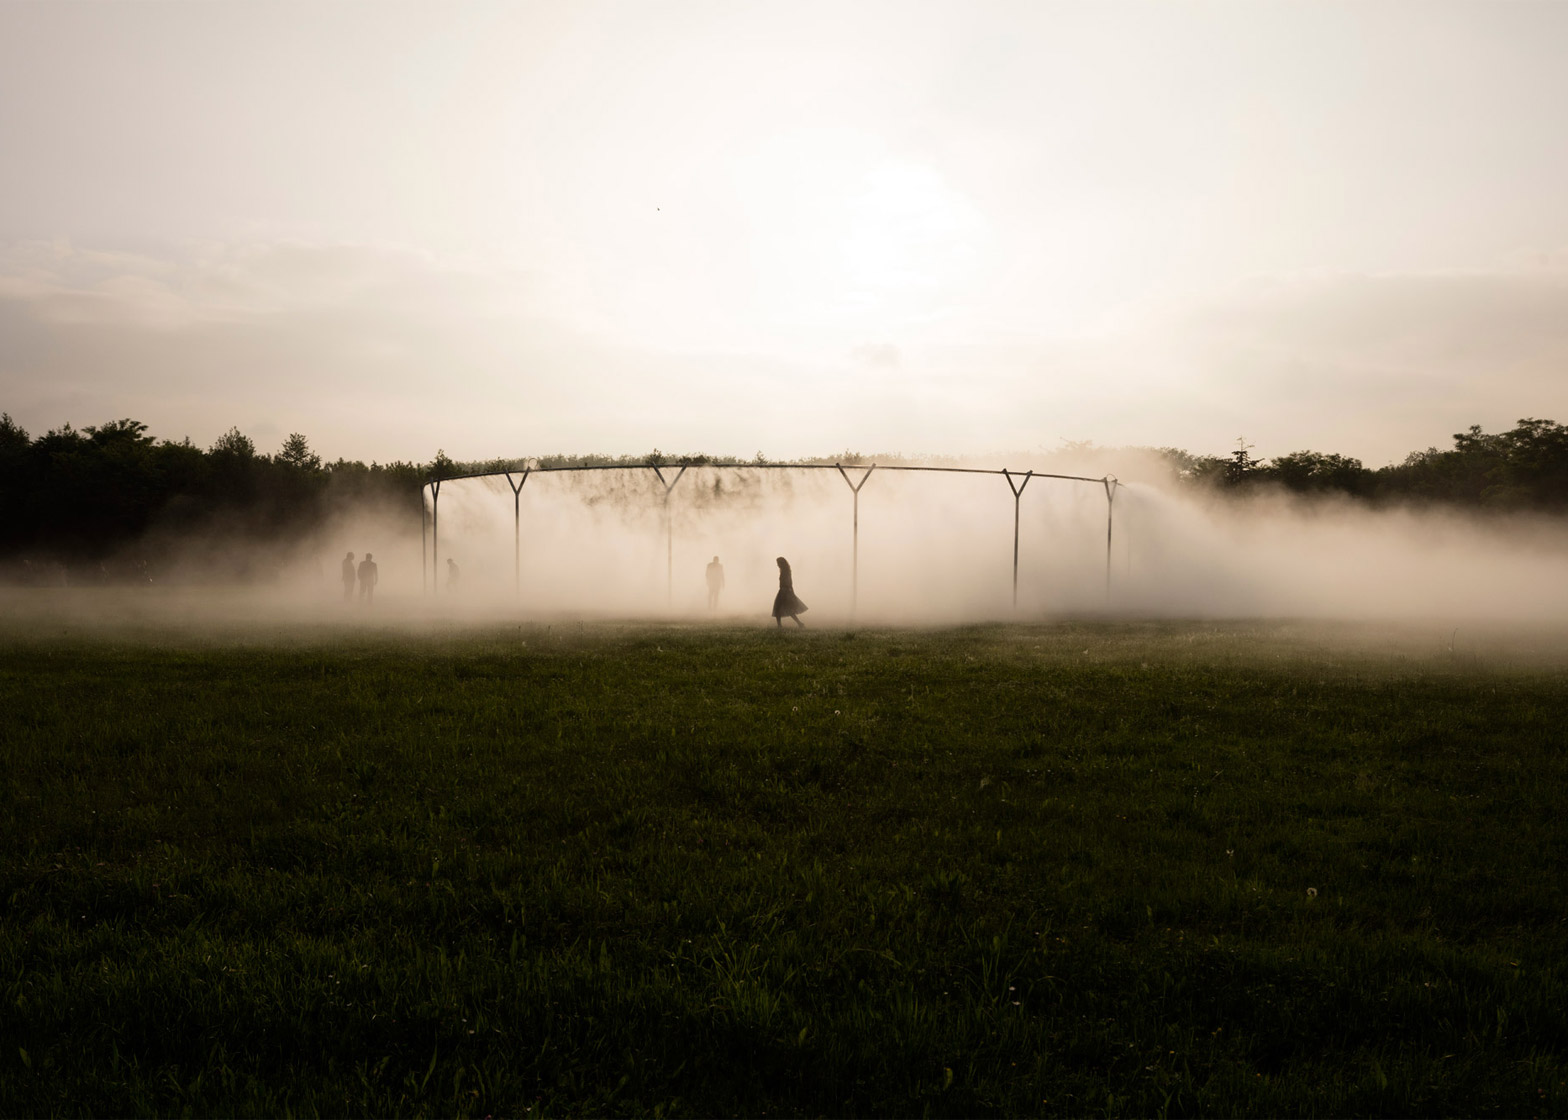 Fog Assembly by Olafur Eliasson at the Palace of Versailles, France